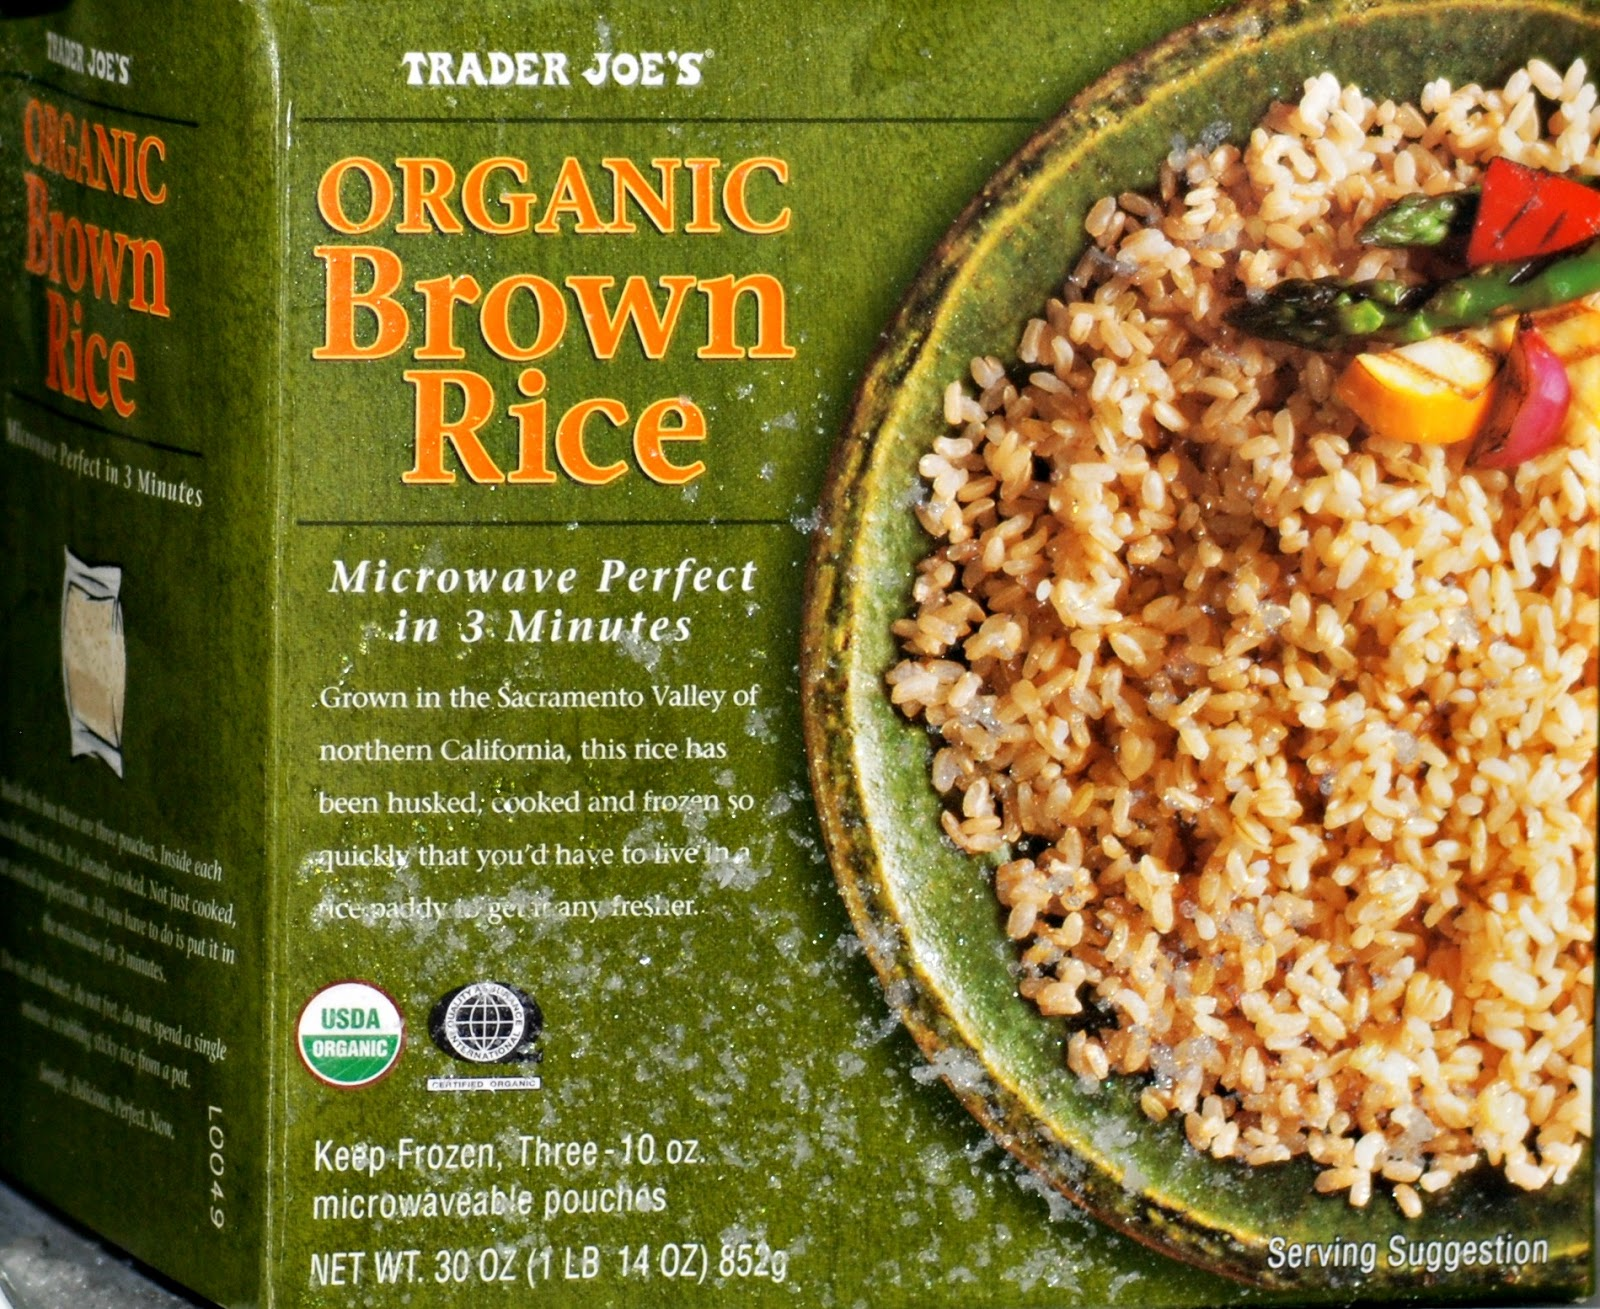 Nutritious Bake & Serve Rice Snack Made Fromanic Whole Grain Brown Rice! I  Wanted To Review This Rice Because It Has Been A Huge Time Saver In My